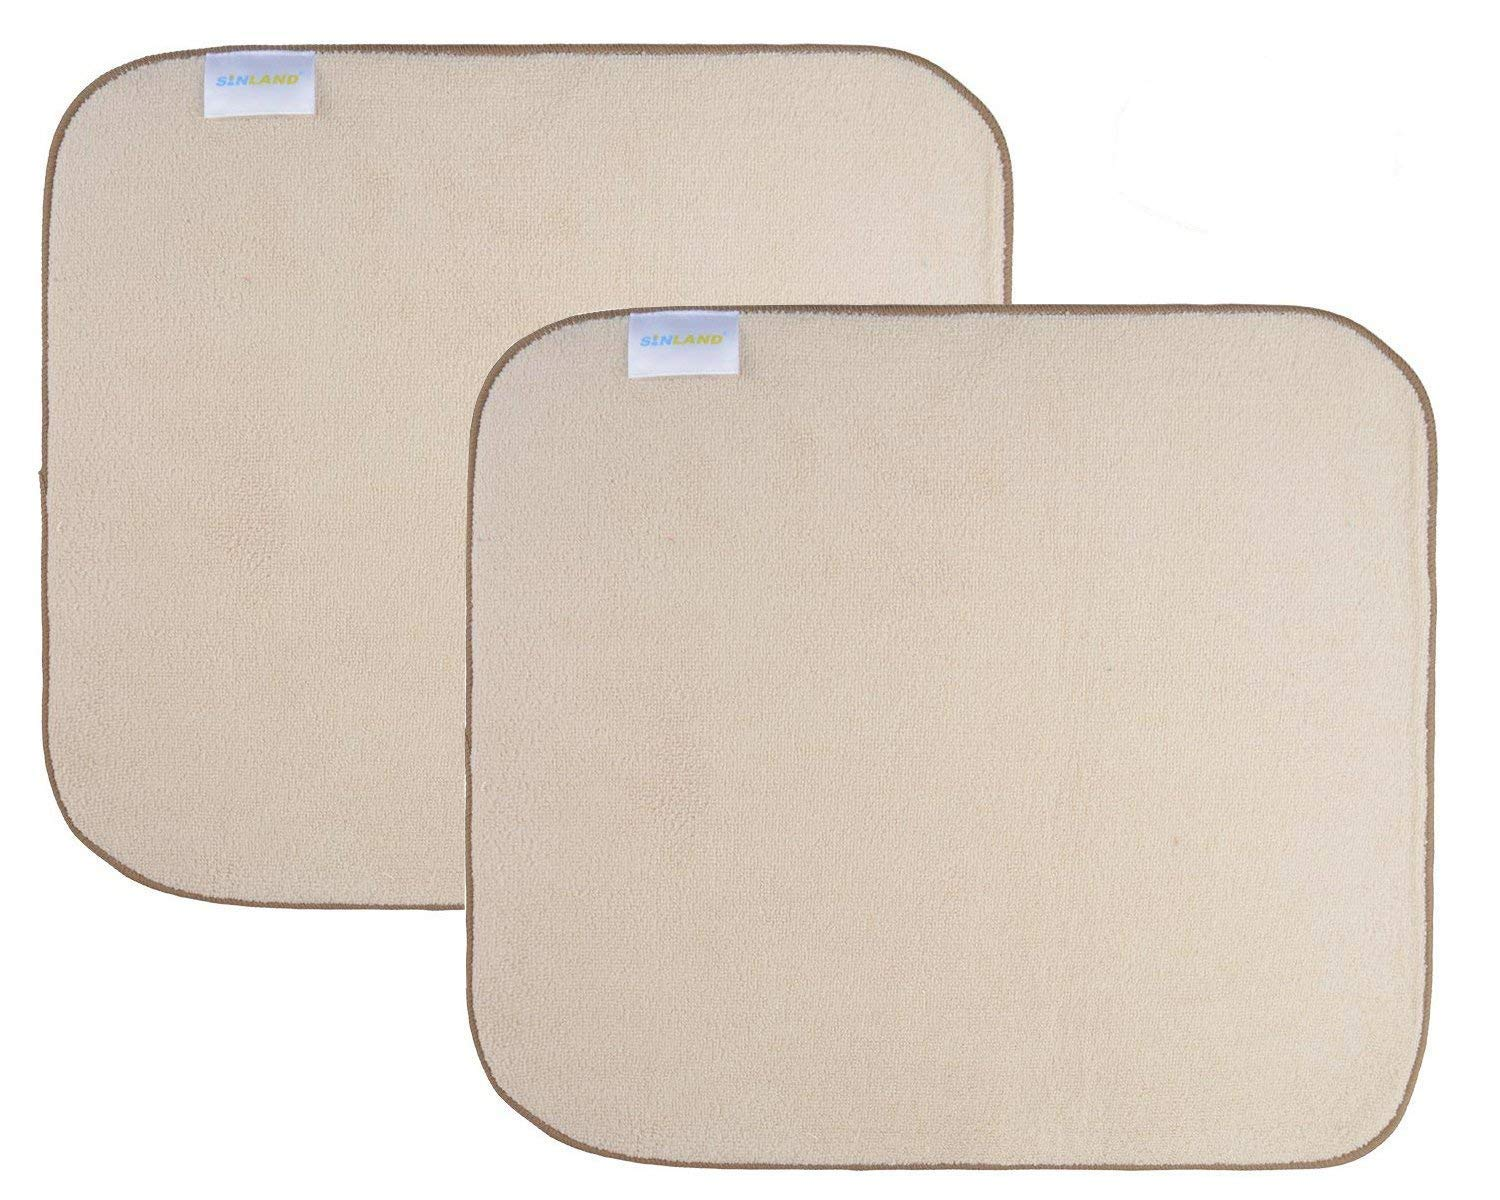 Sinland Microfiber Dish Drying Mats Super Absorbent 16x18 ( Basic Style Cream) COMINHKPR72222